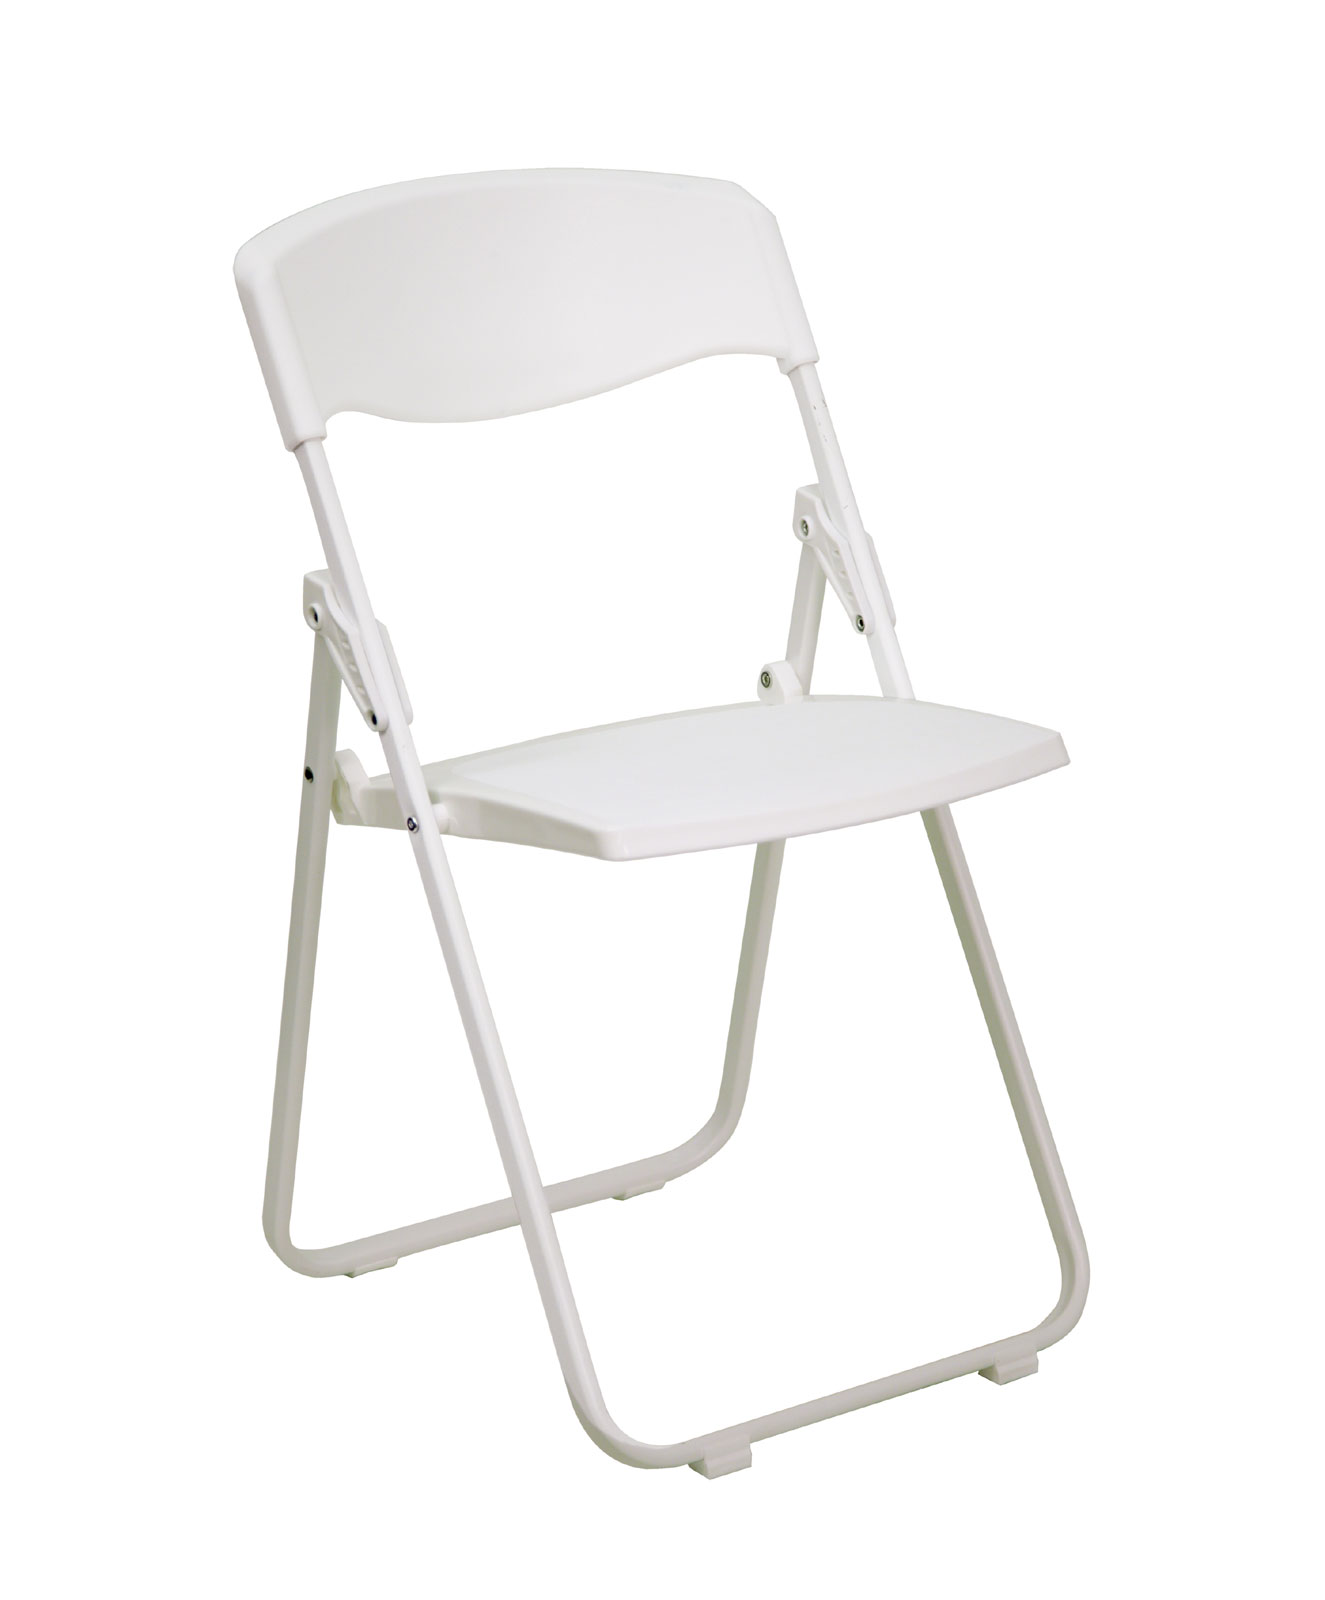 heavy duty resin patio chairs black swivel chair hercules series 880 lb capacity white plastic